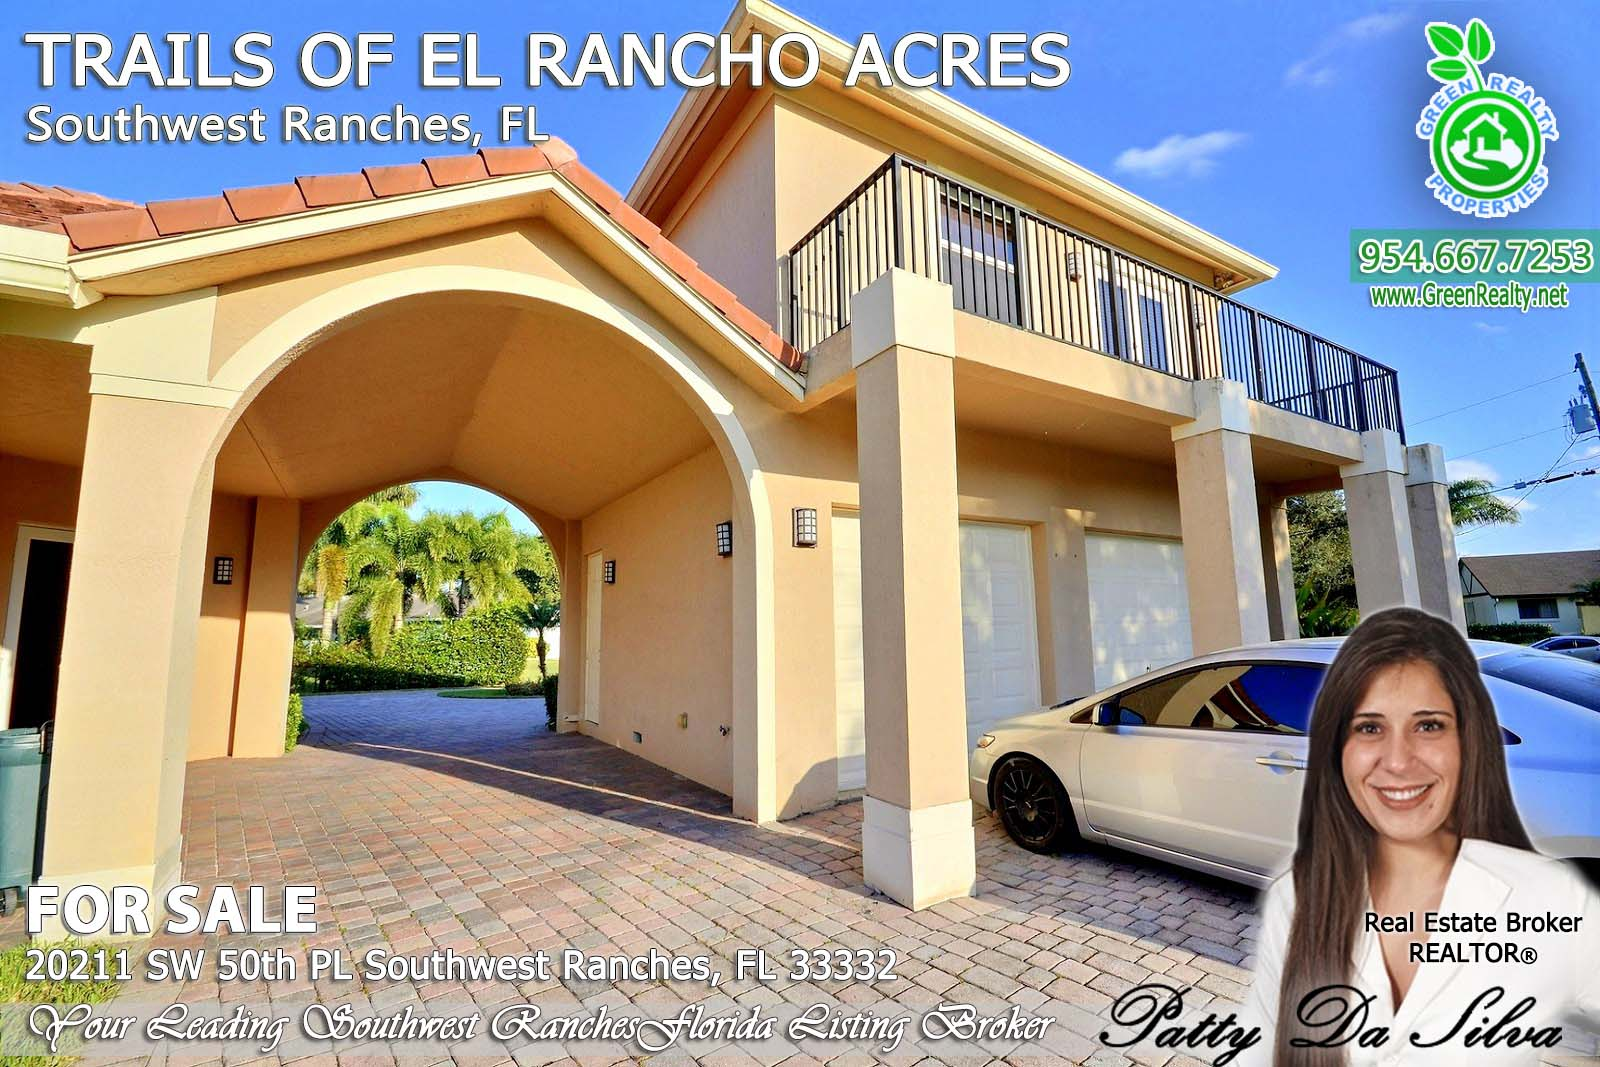 20211 SW 50th PL, Southwest Ranches, FL 33332 (76)